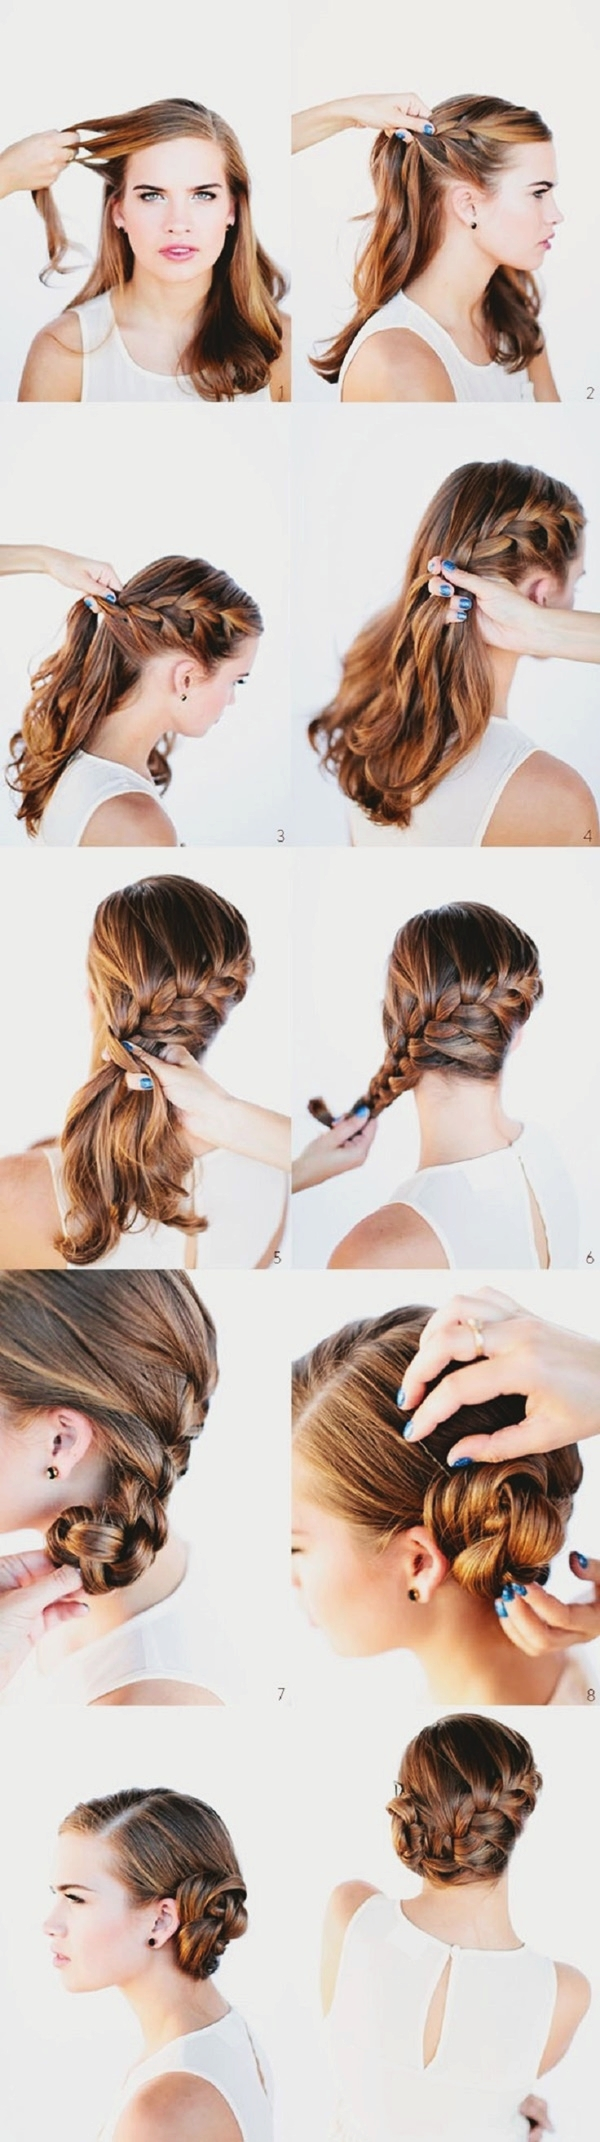 Easy Step By Step Hairstyles for Long Hair16